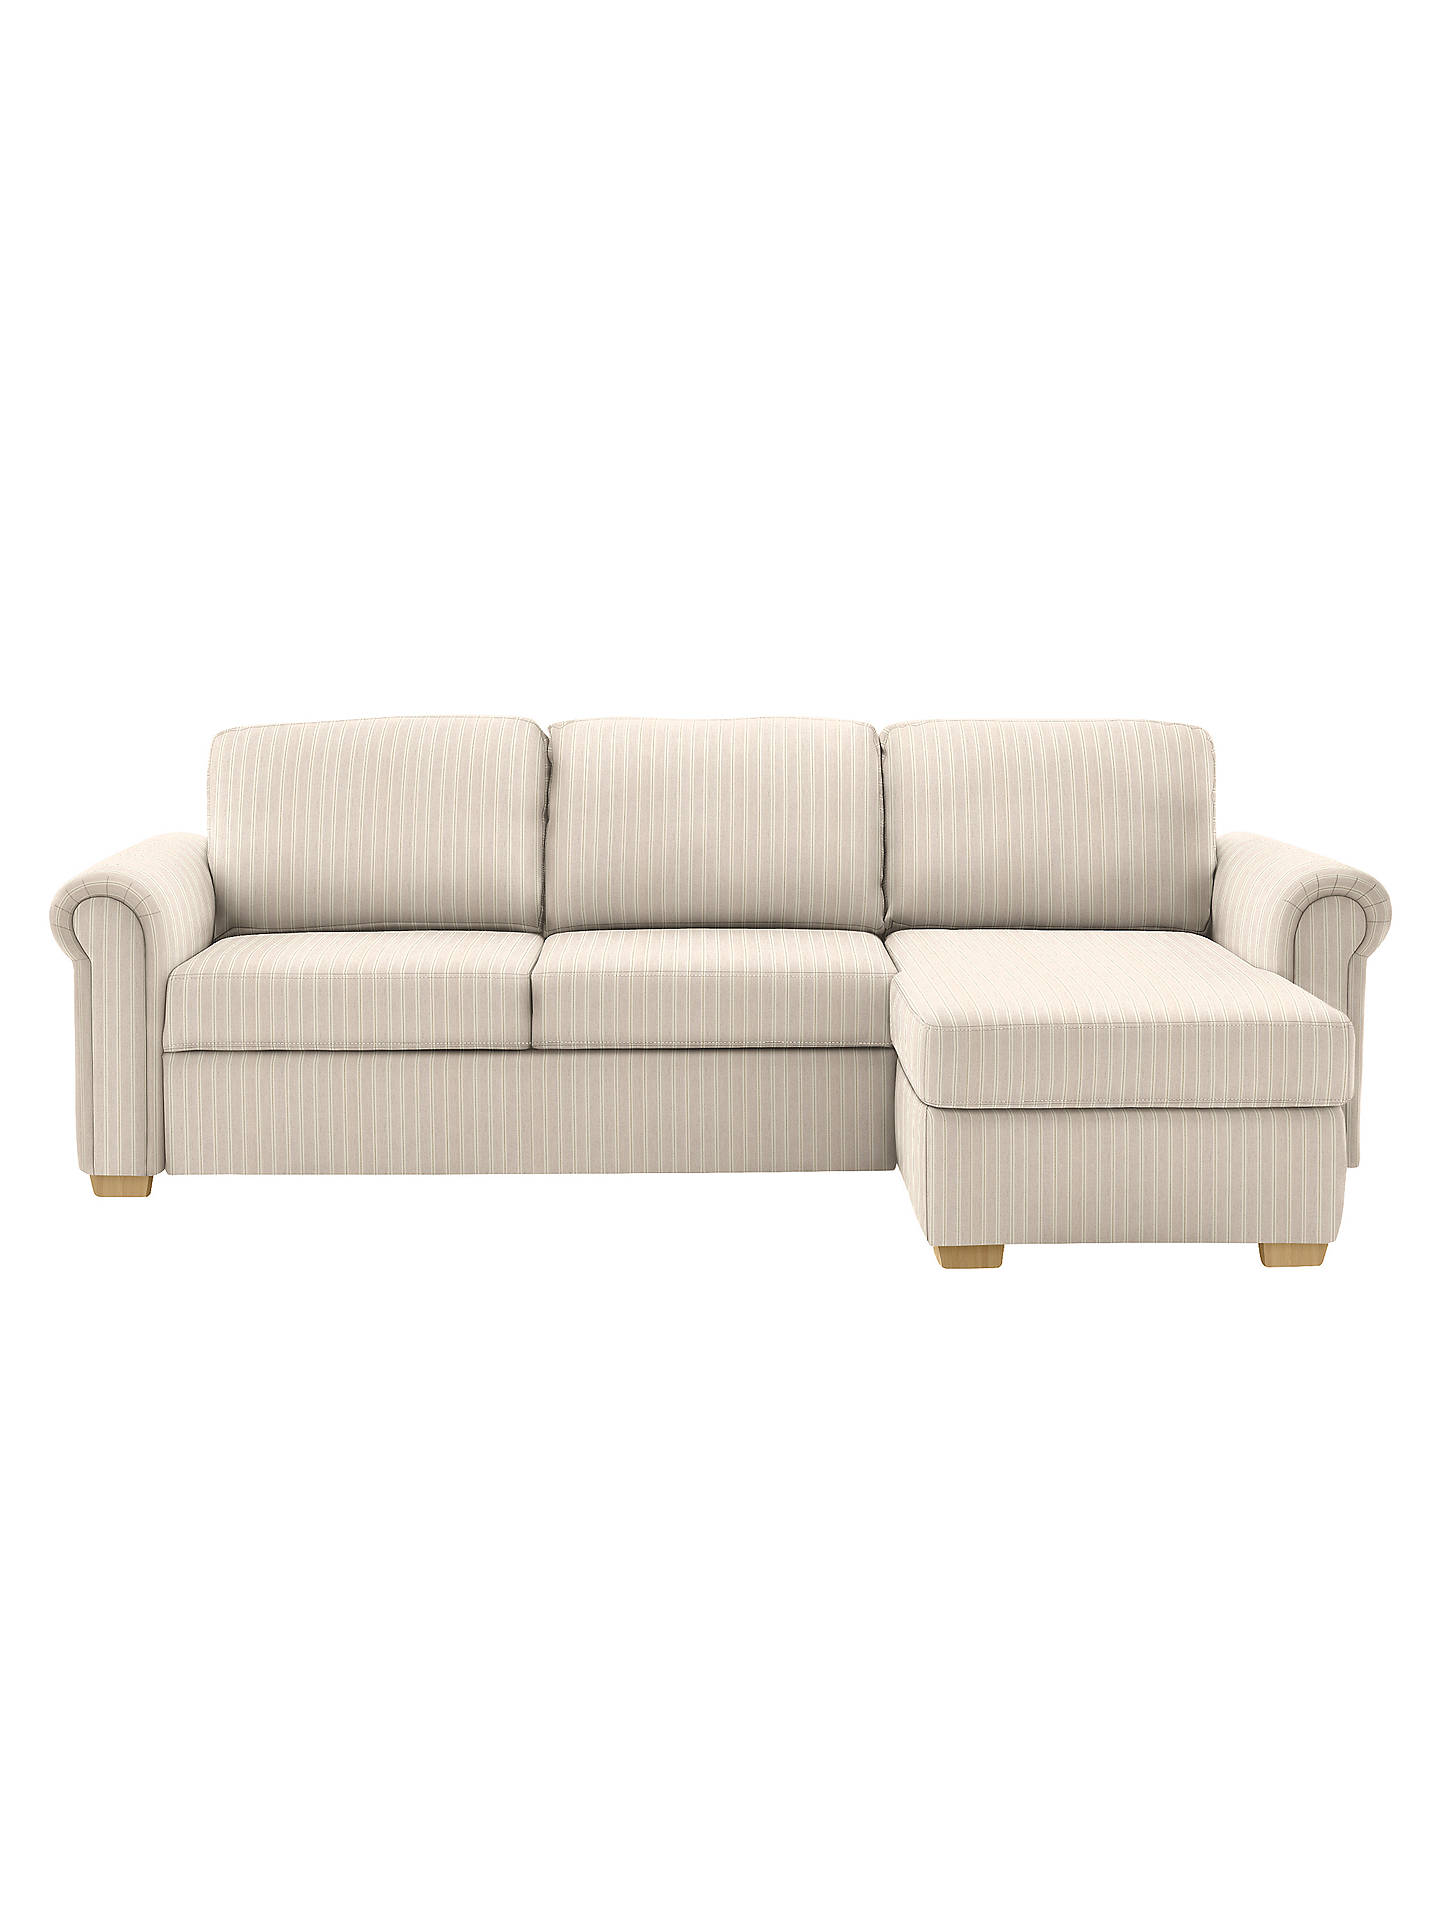 Marvelous John Lewis Sacha Large Scroll Arm Storage Sofa Bed At John Gmtry Best Dining Table And Chair Ideas Images Gmtryco